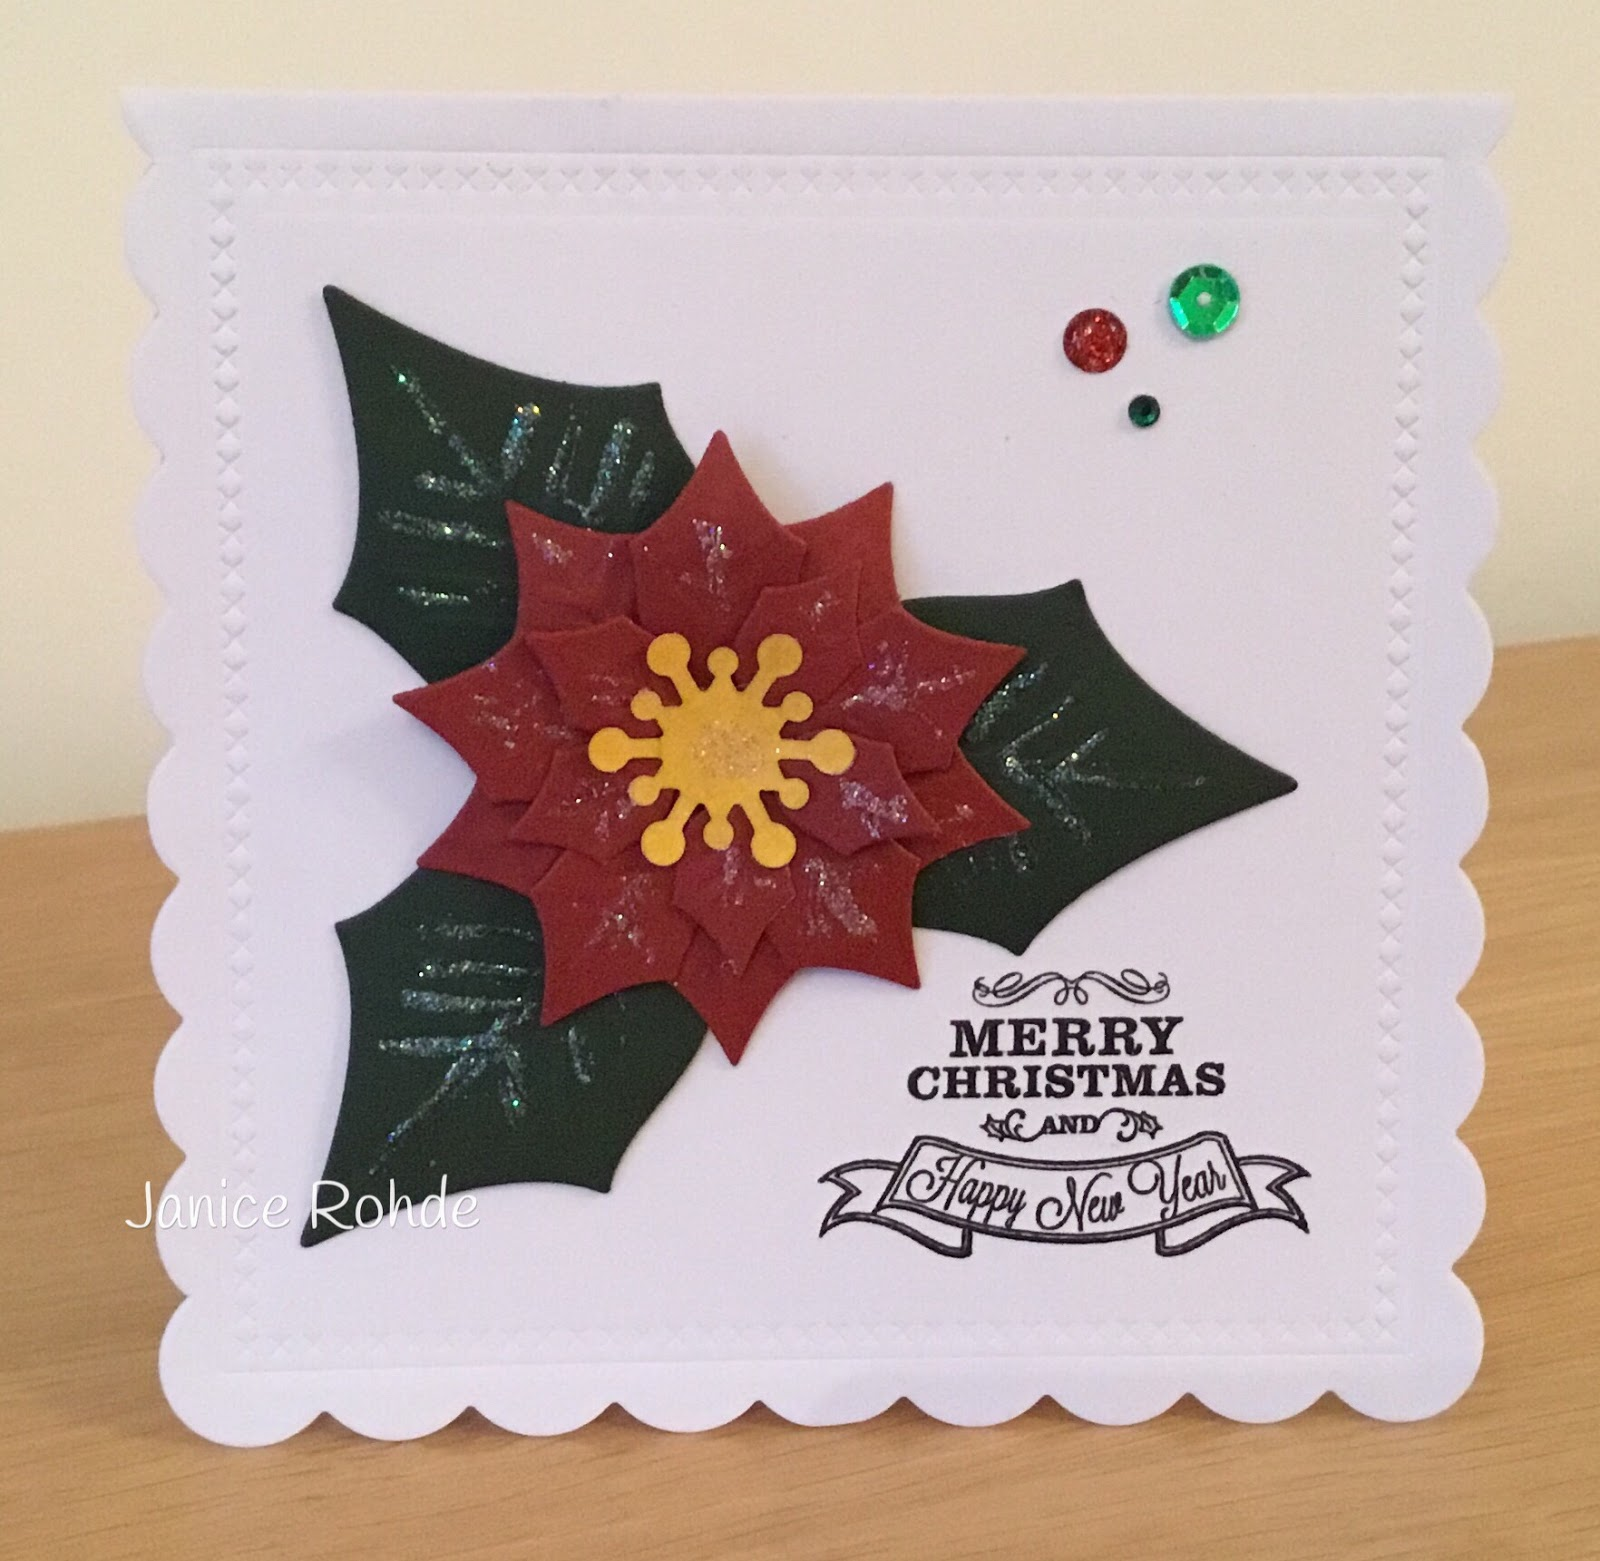 My Craft Room Makes: A \'Clean and Simple\' Christmas Card...